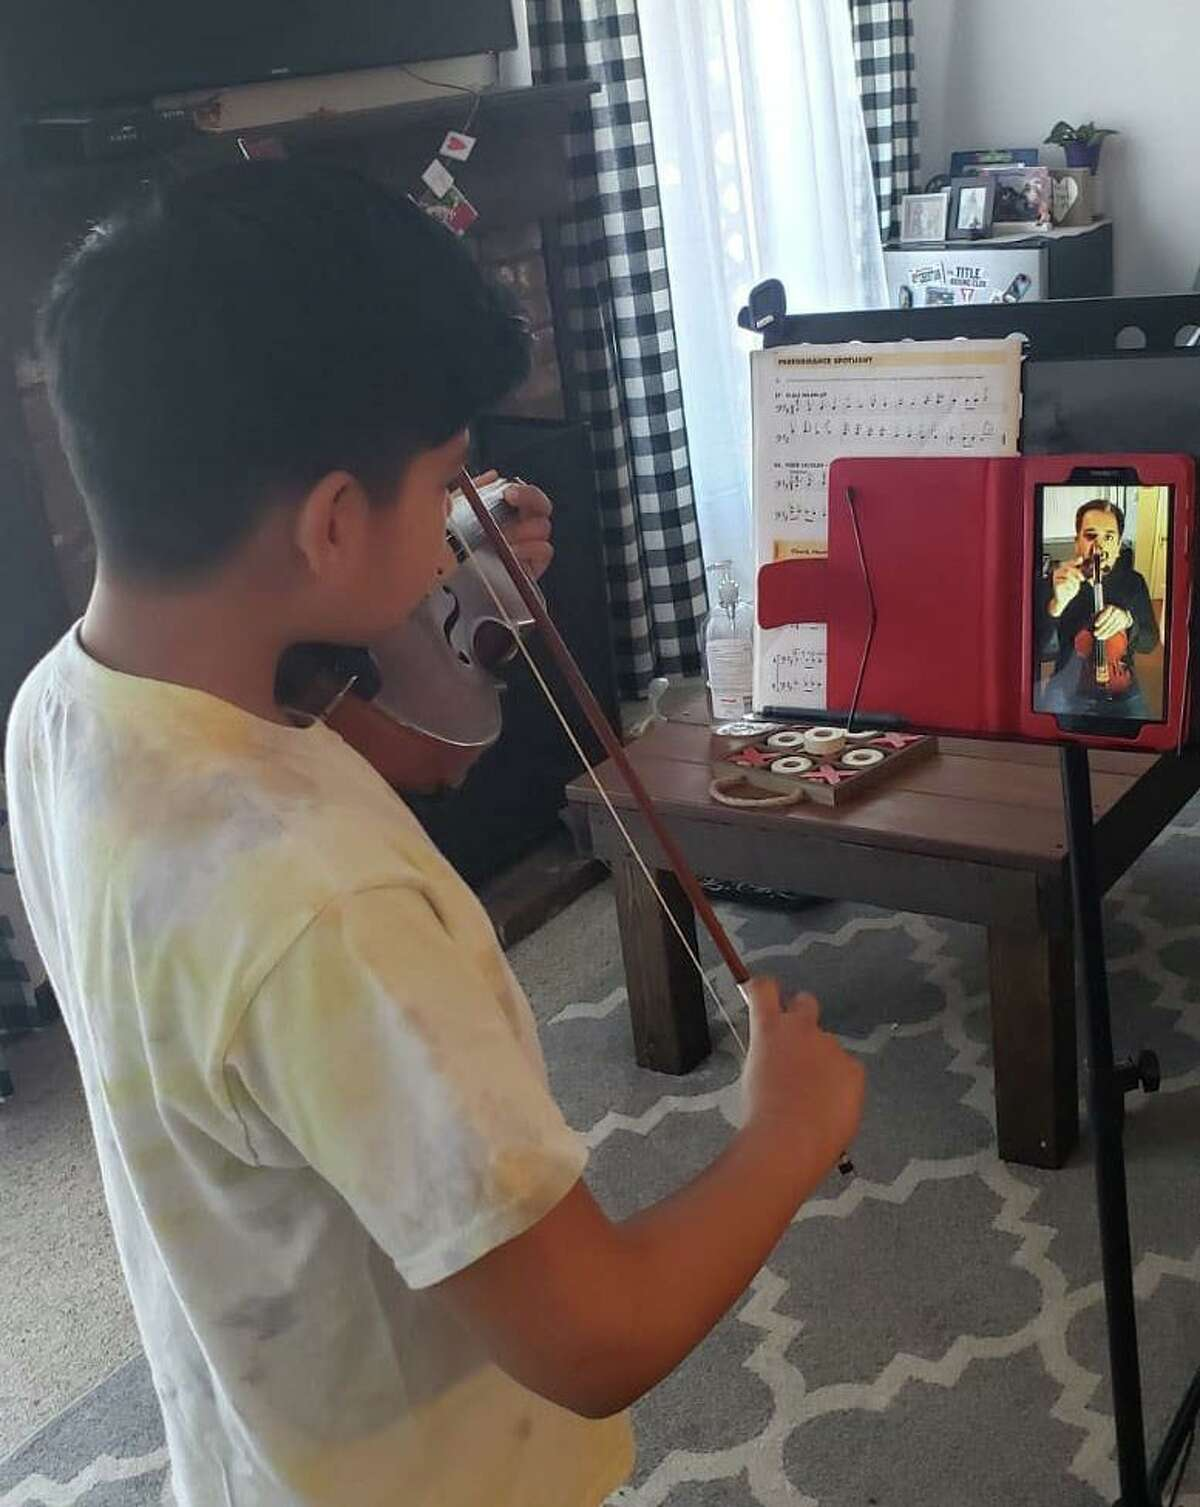 Nathaniel on violin receiving an online music class from INTEMPO's teaching artist, Colin Benn. They are practicing the Brazilian repertoire for the upcoming online Cultural Crossover Concert on Saturday May 30 at 7 p.m. via Facebook and YouTube Live. INTEMPO's mission is to make intercultural music education and literacy relevant, accessible, and inclusive. It's students come from 4 different towns and 34 different schools in Fairfield County. To learn more, visit: www.intempo.org.